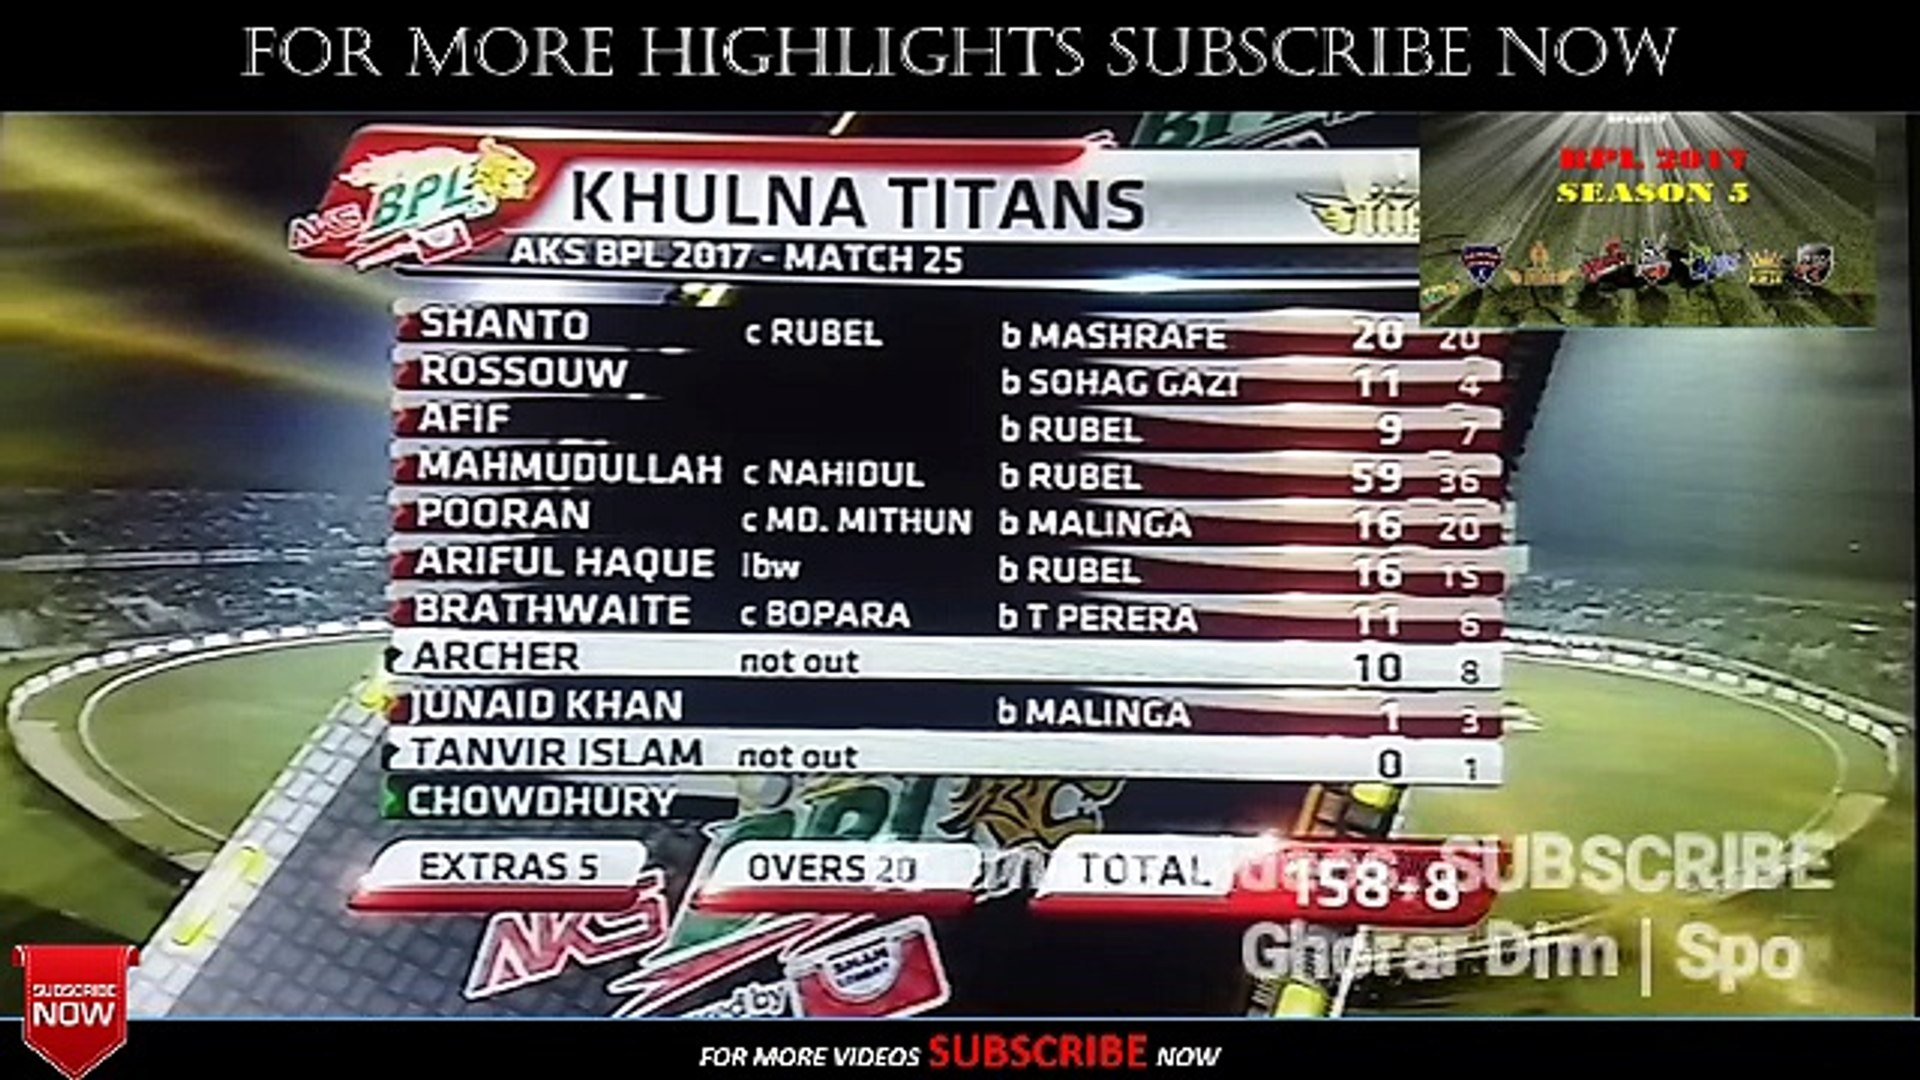 HIGHLIGHTS | Khulna vs Rangpur Highlights | BPL 2017 Match 25 | BPL 2017 Match 25 Highlights